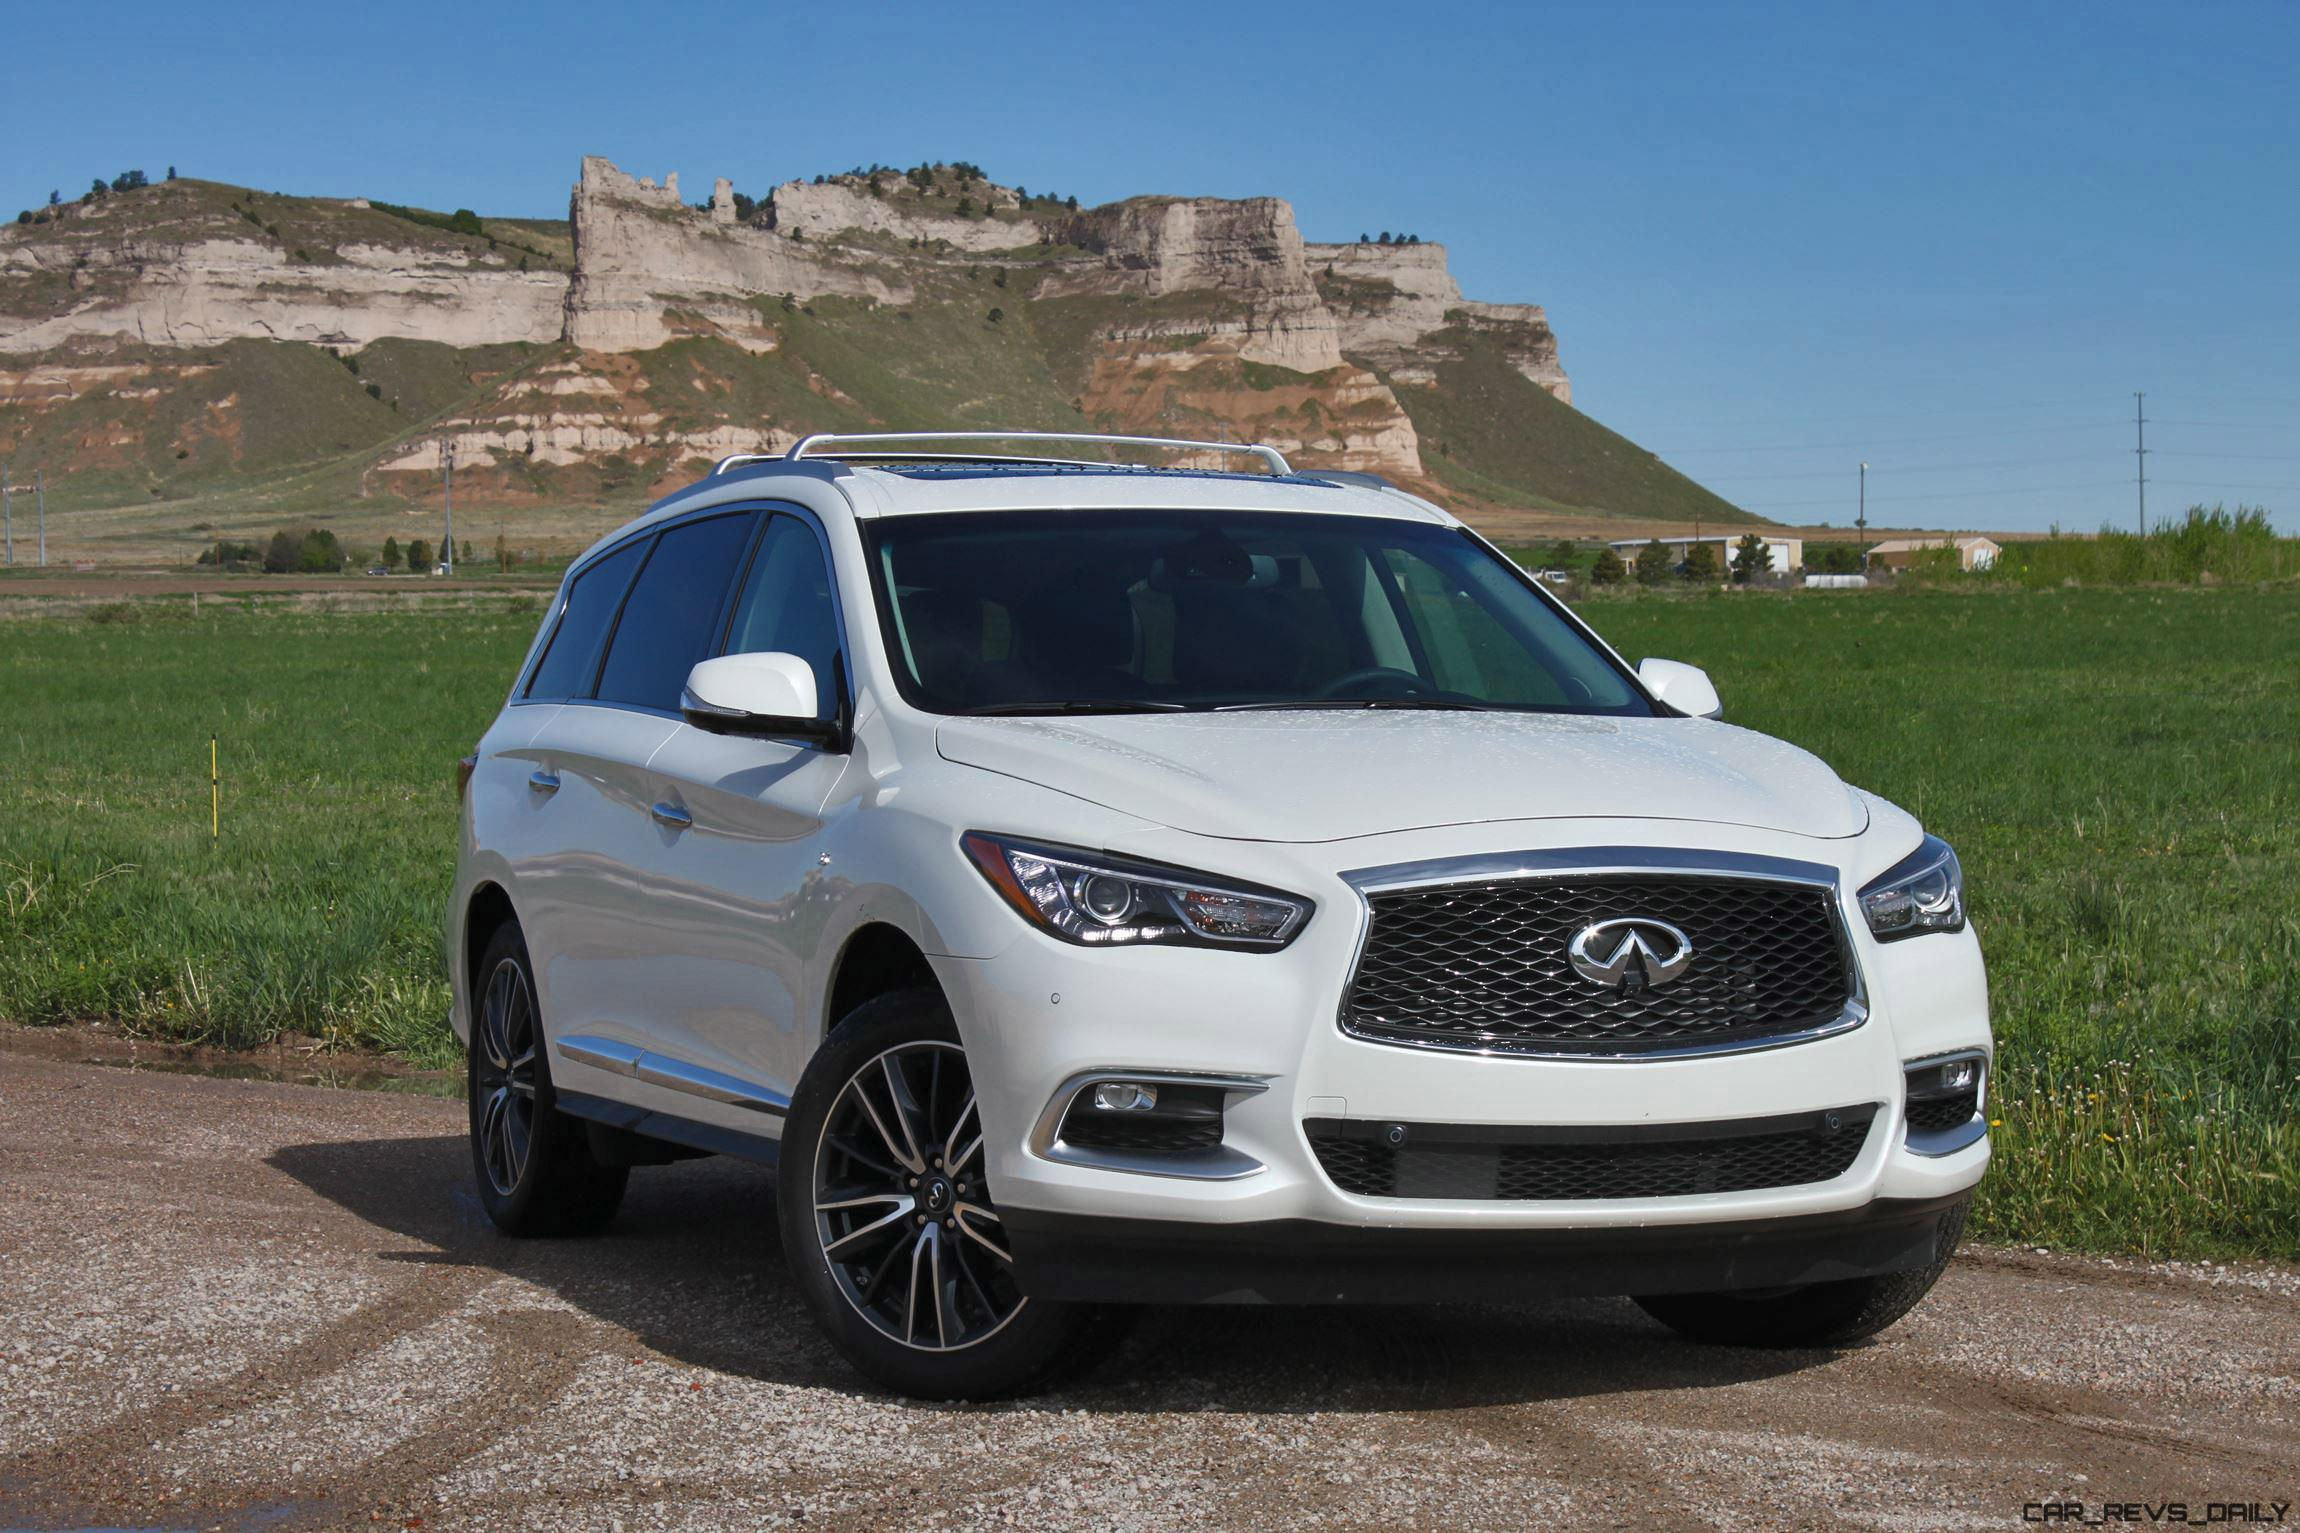 road test review 2016 infiniti qx60 awd by tim esterdahl. Black Bedroom Furniture Sets. Home Design Ideas